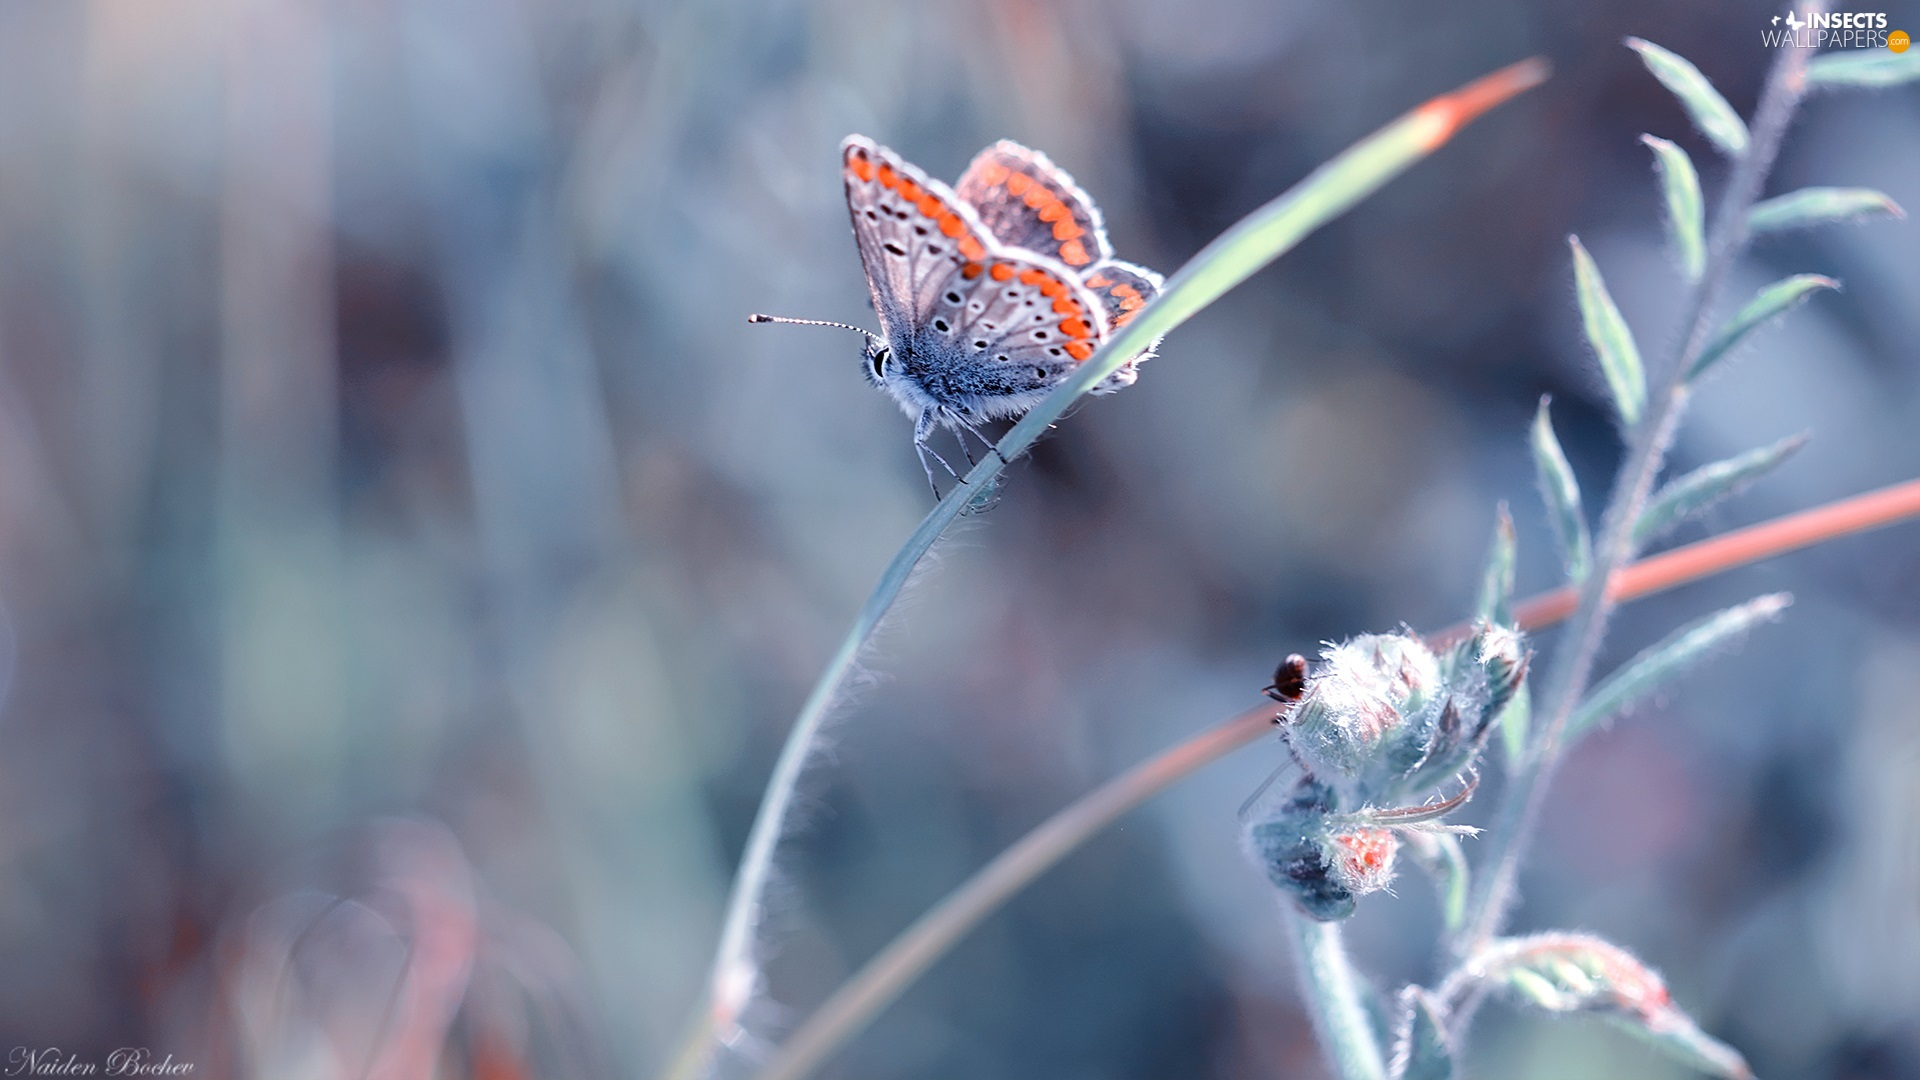 plant, blurry background, Adonis Blue, stalk, butterfly